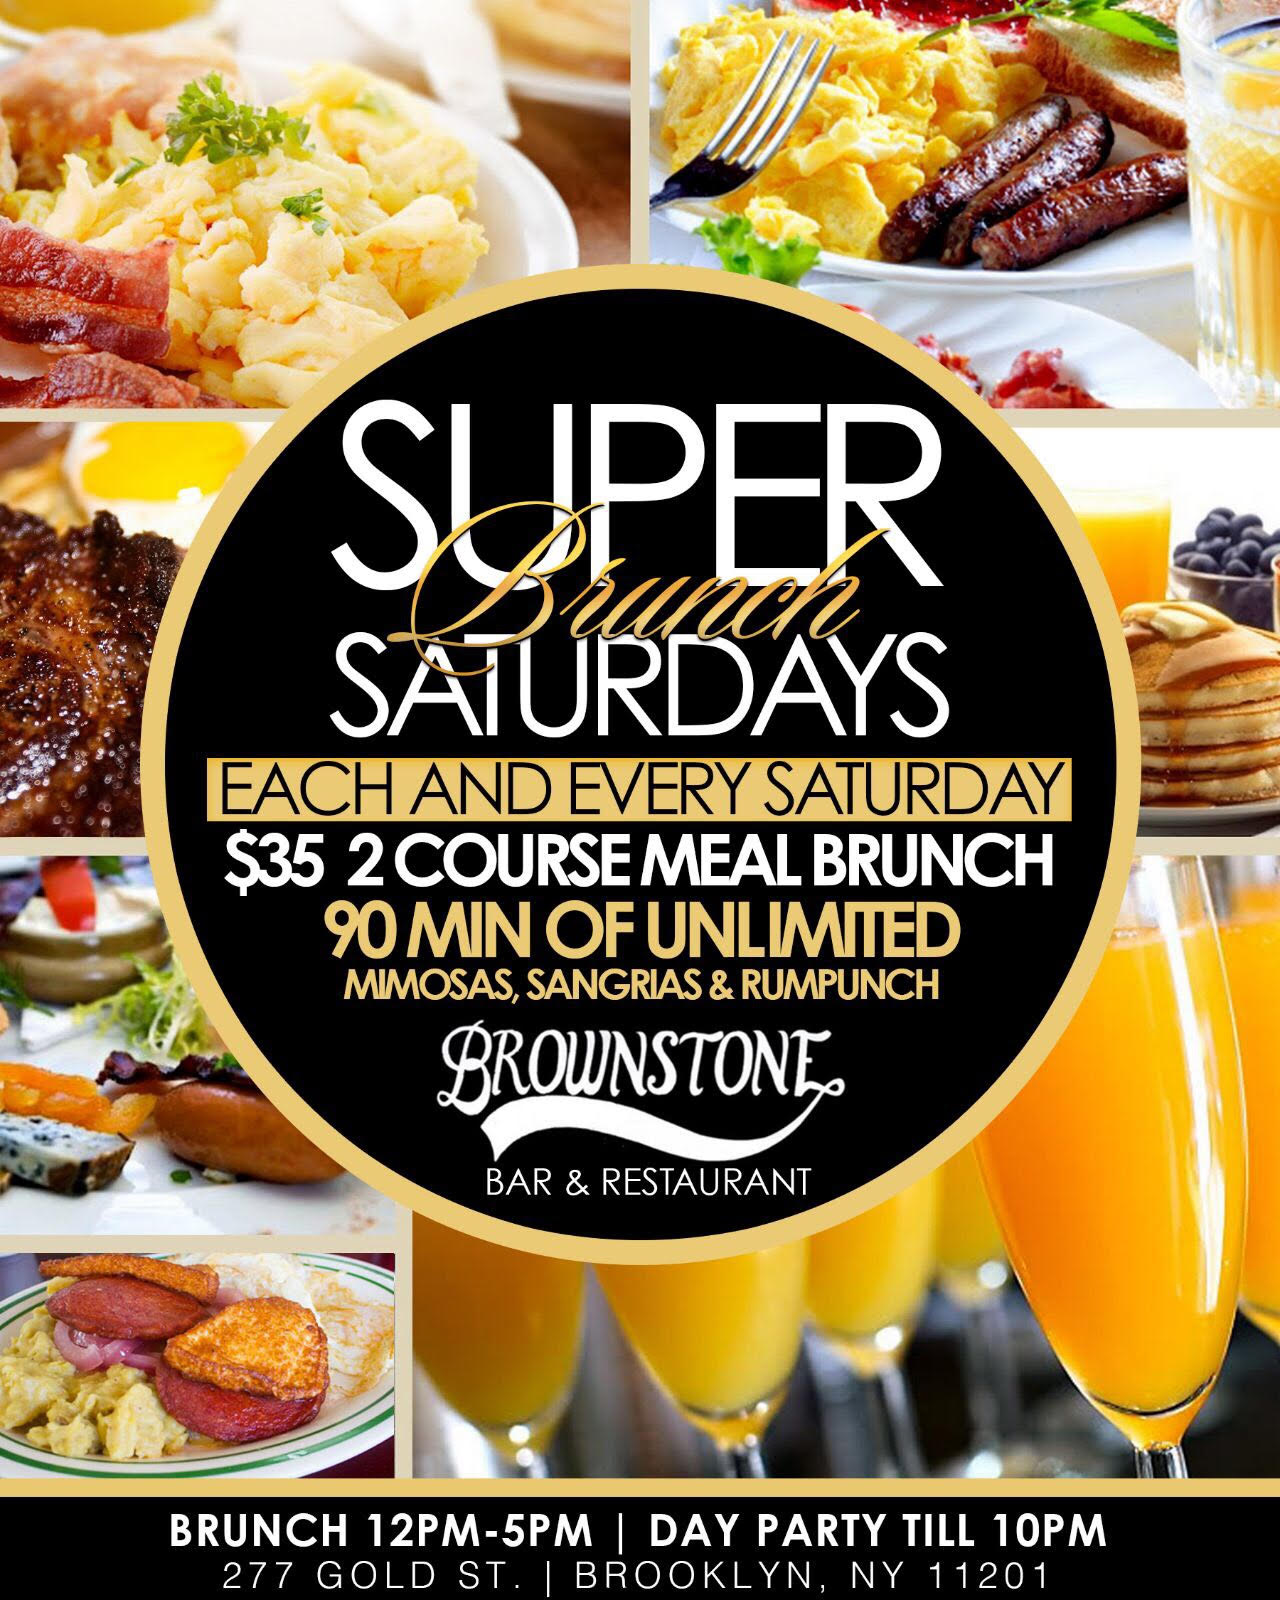 Super Brunch Saturdays Flyer